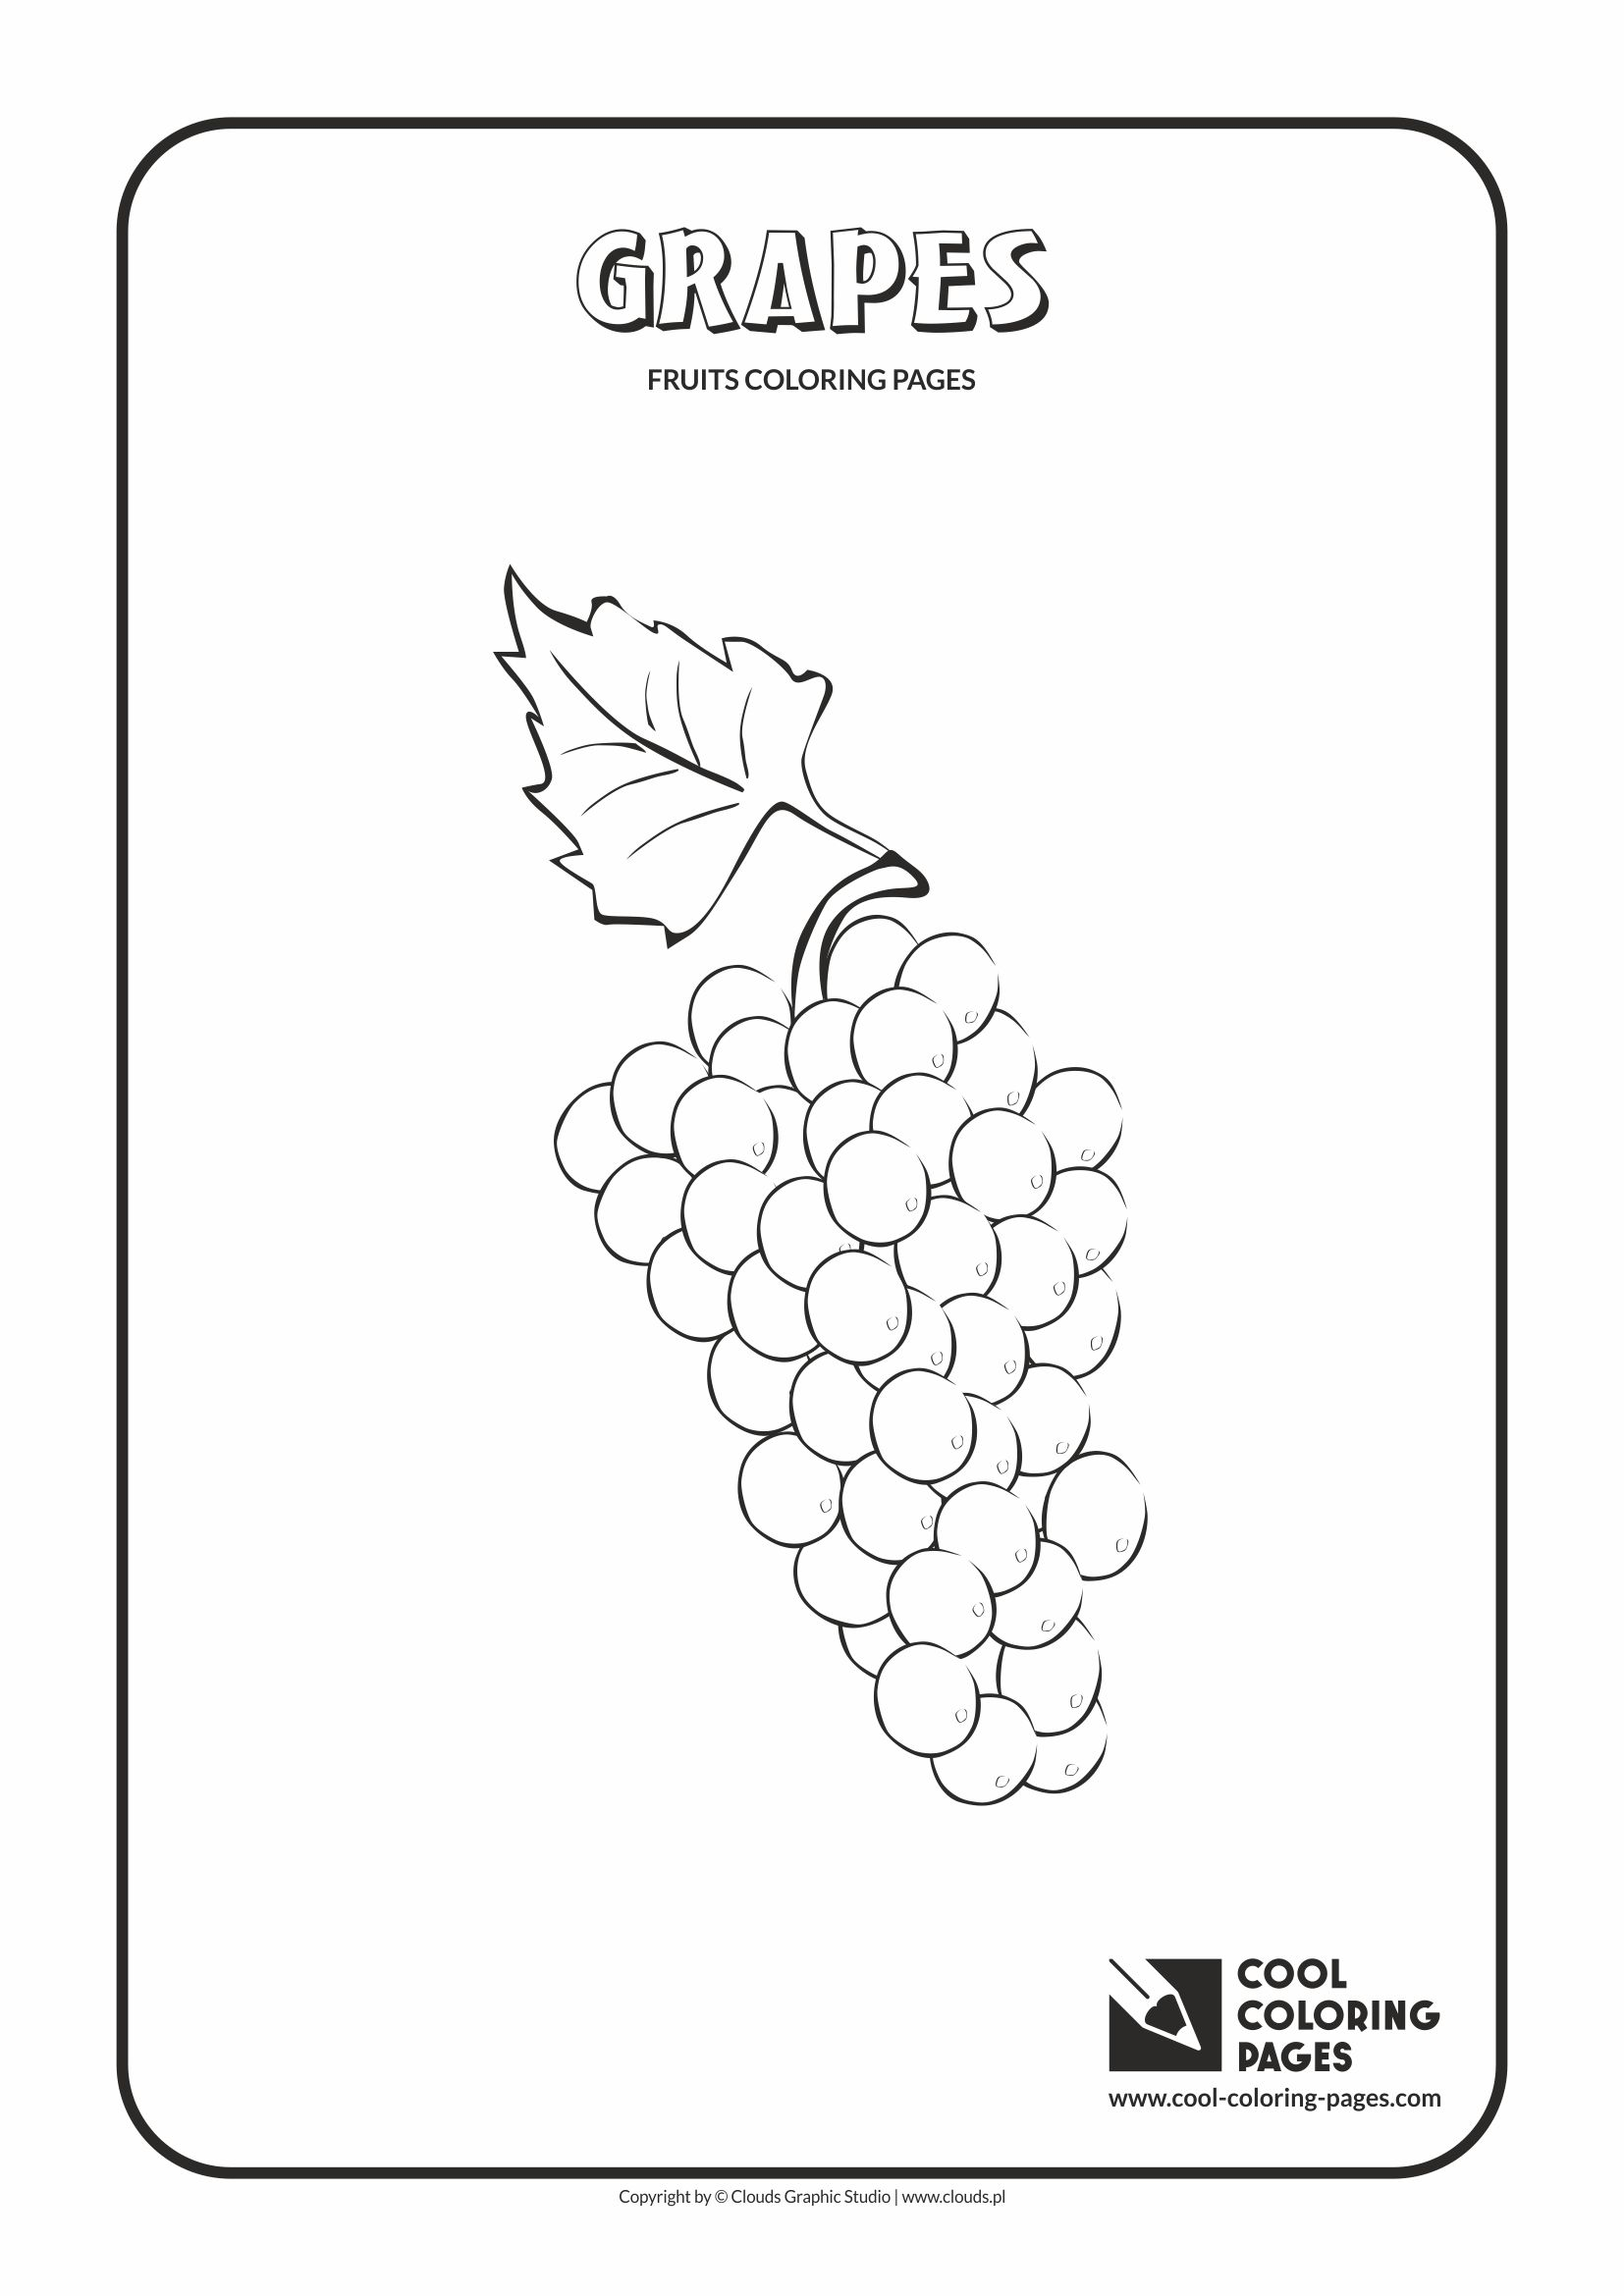 Cool Coloring Pages - Plants / Grapes / Coloring page with grapes